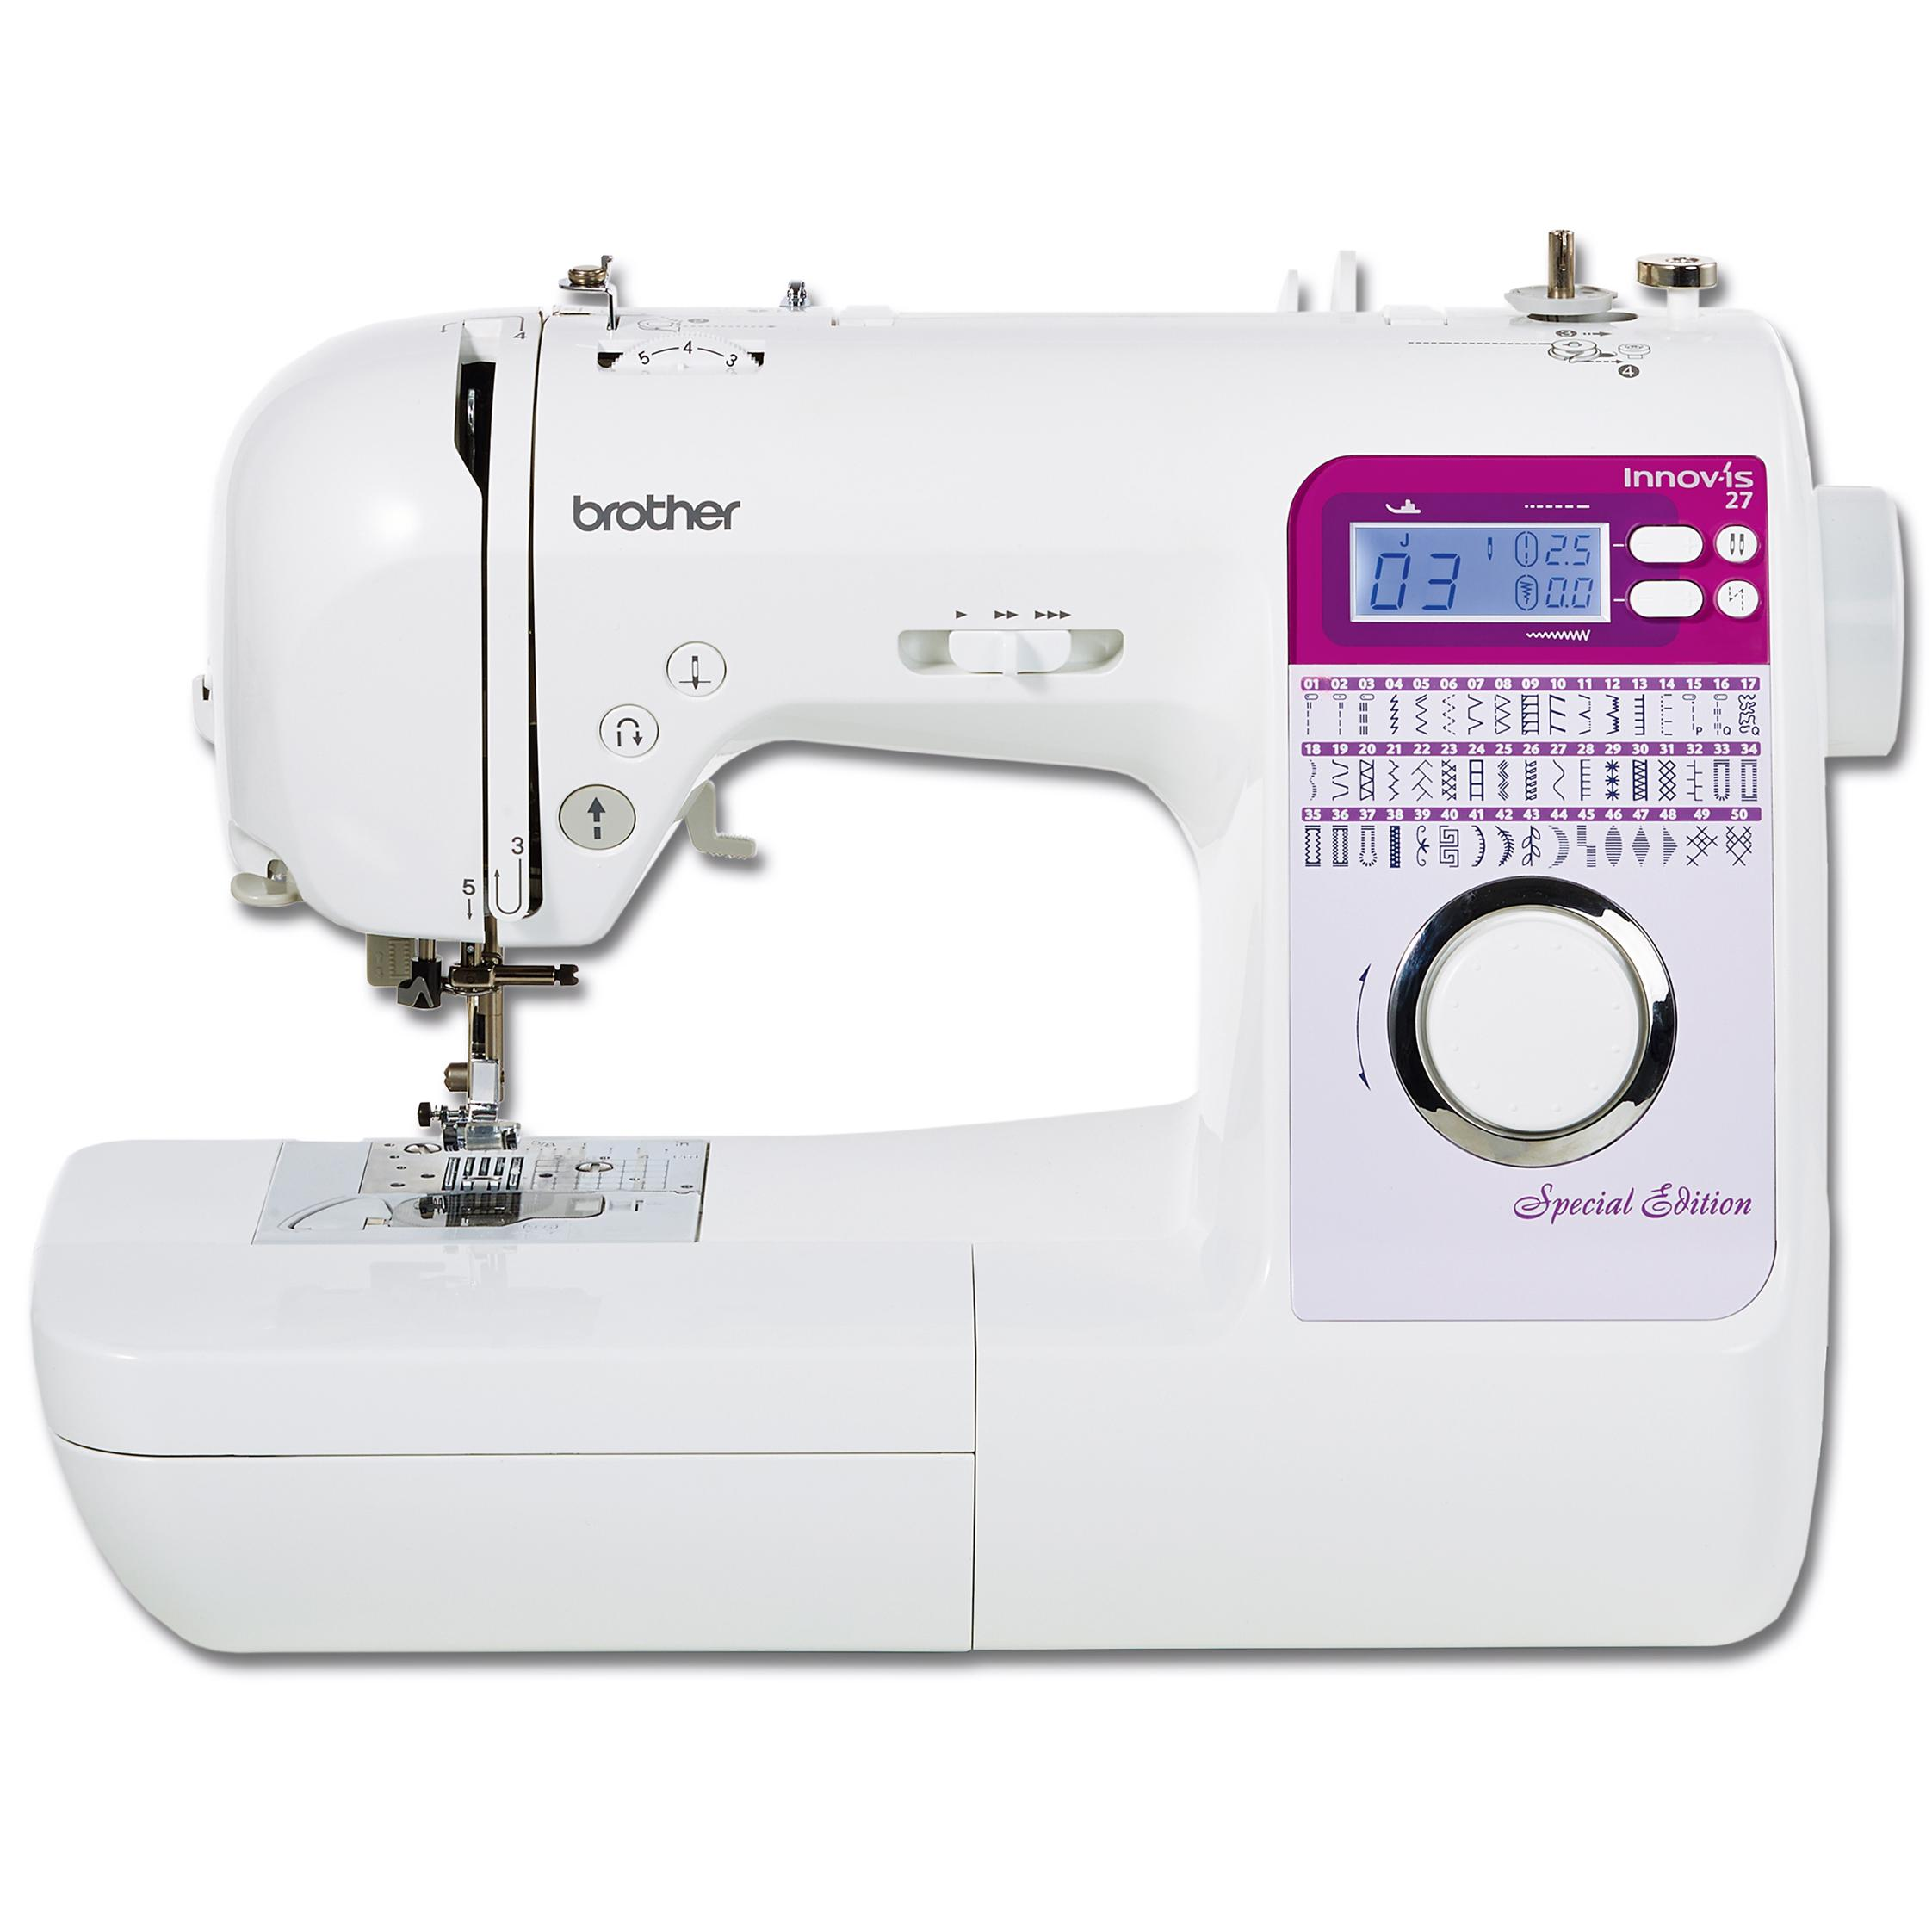 Brother Innov-is 27SE Sewing Machine